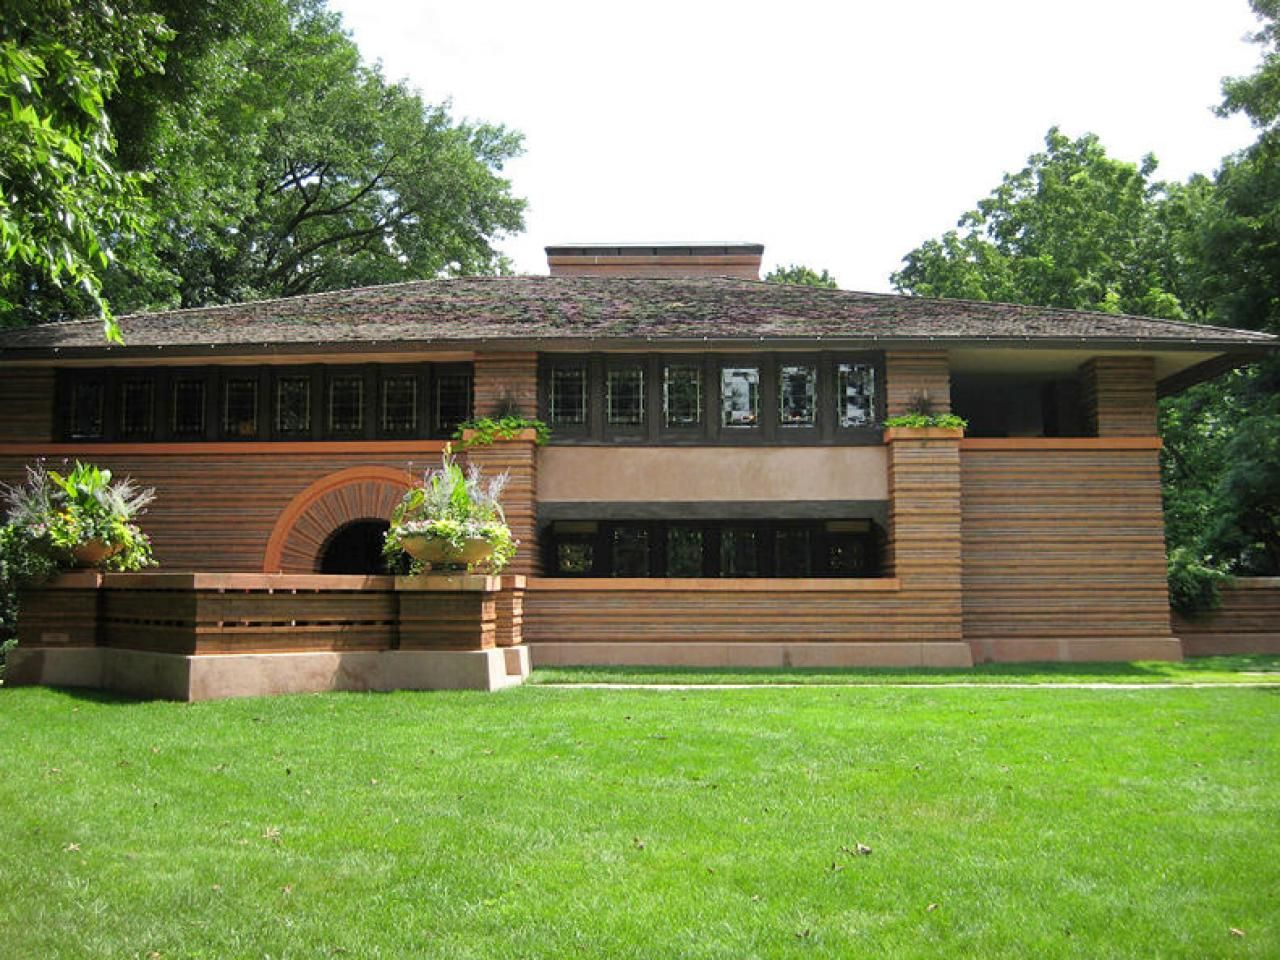 Chicagostyle homes prairie style houses architecture